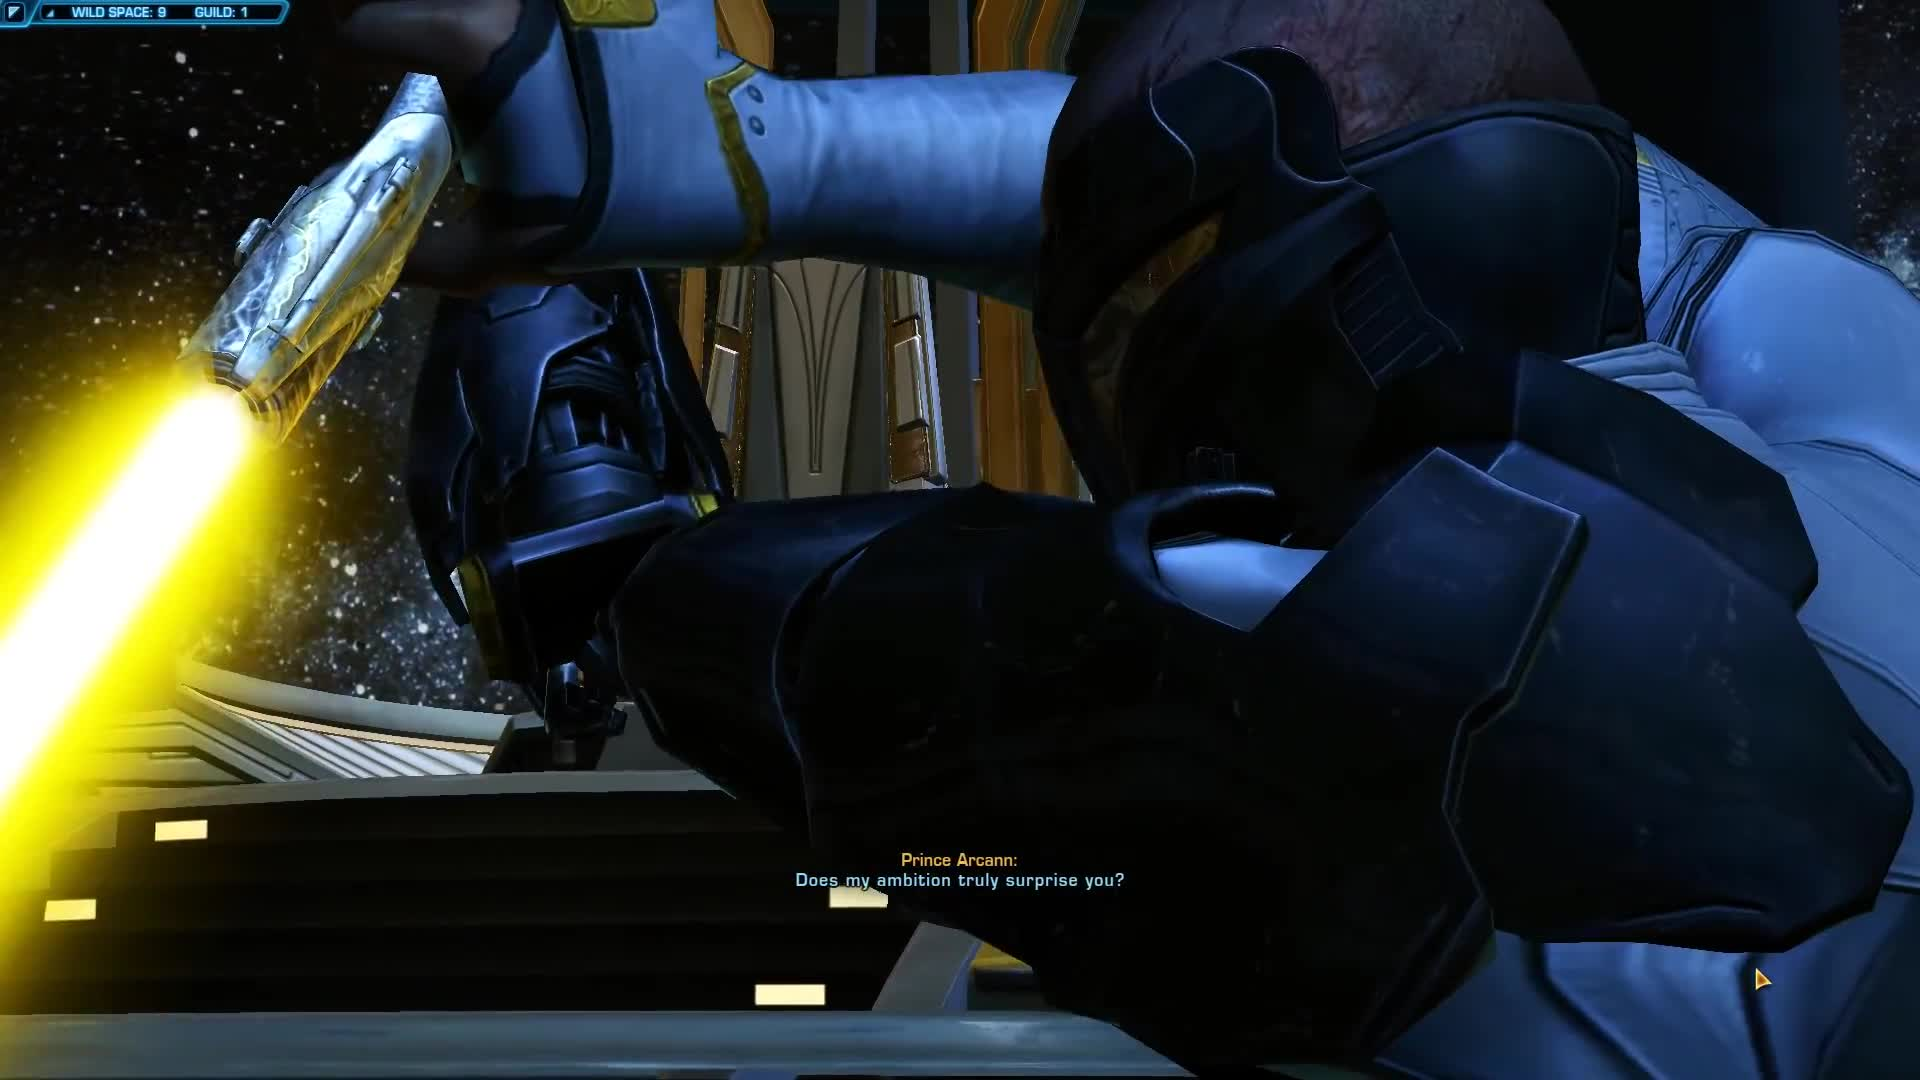 Darth, Marr, Old, Republic, SWTOR, Sith, Star, Star Wars, The, Wars, Barrier? GIFs